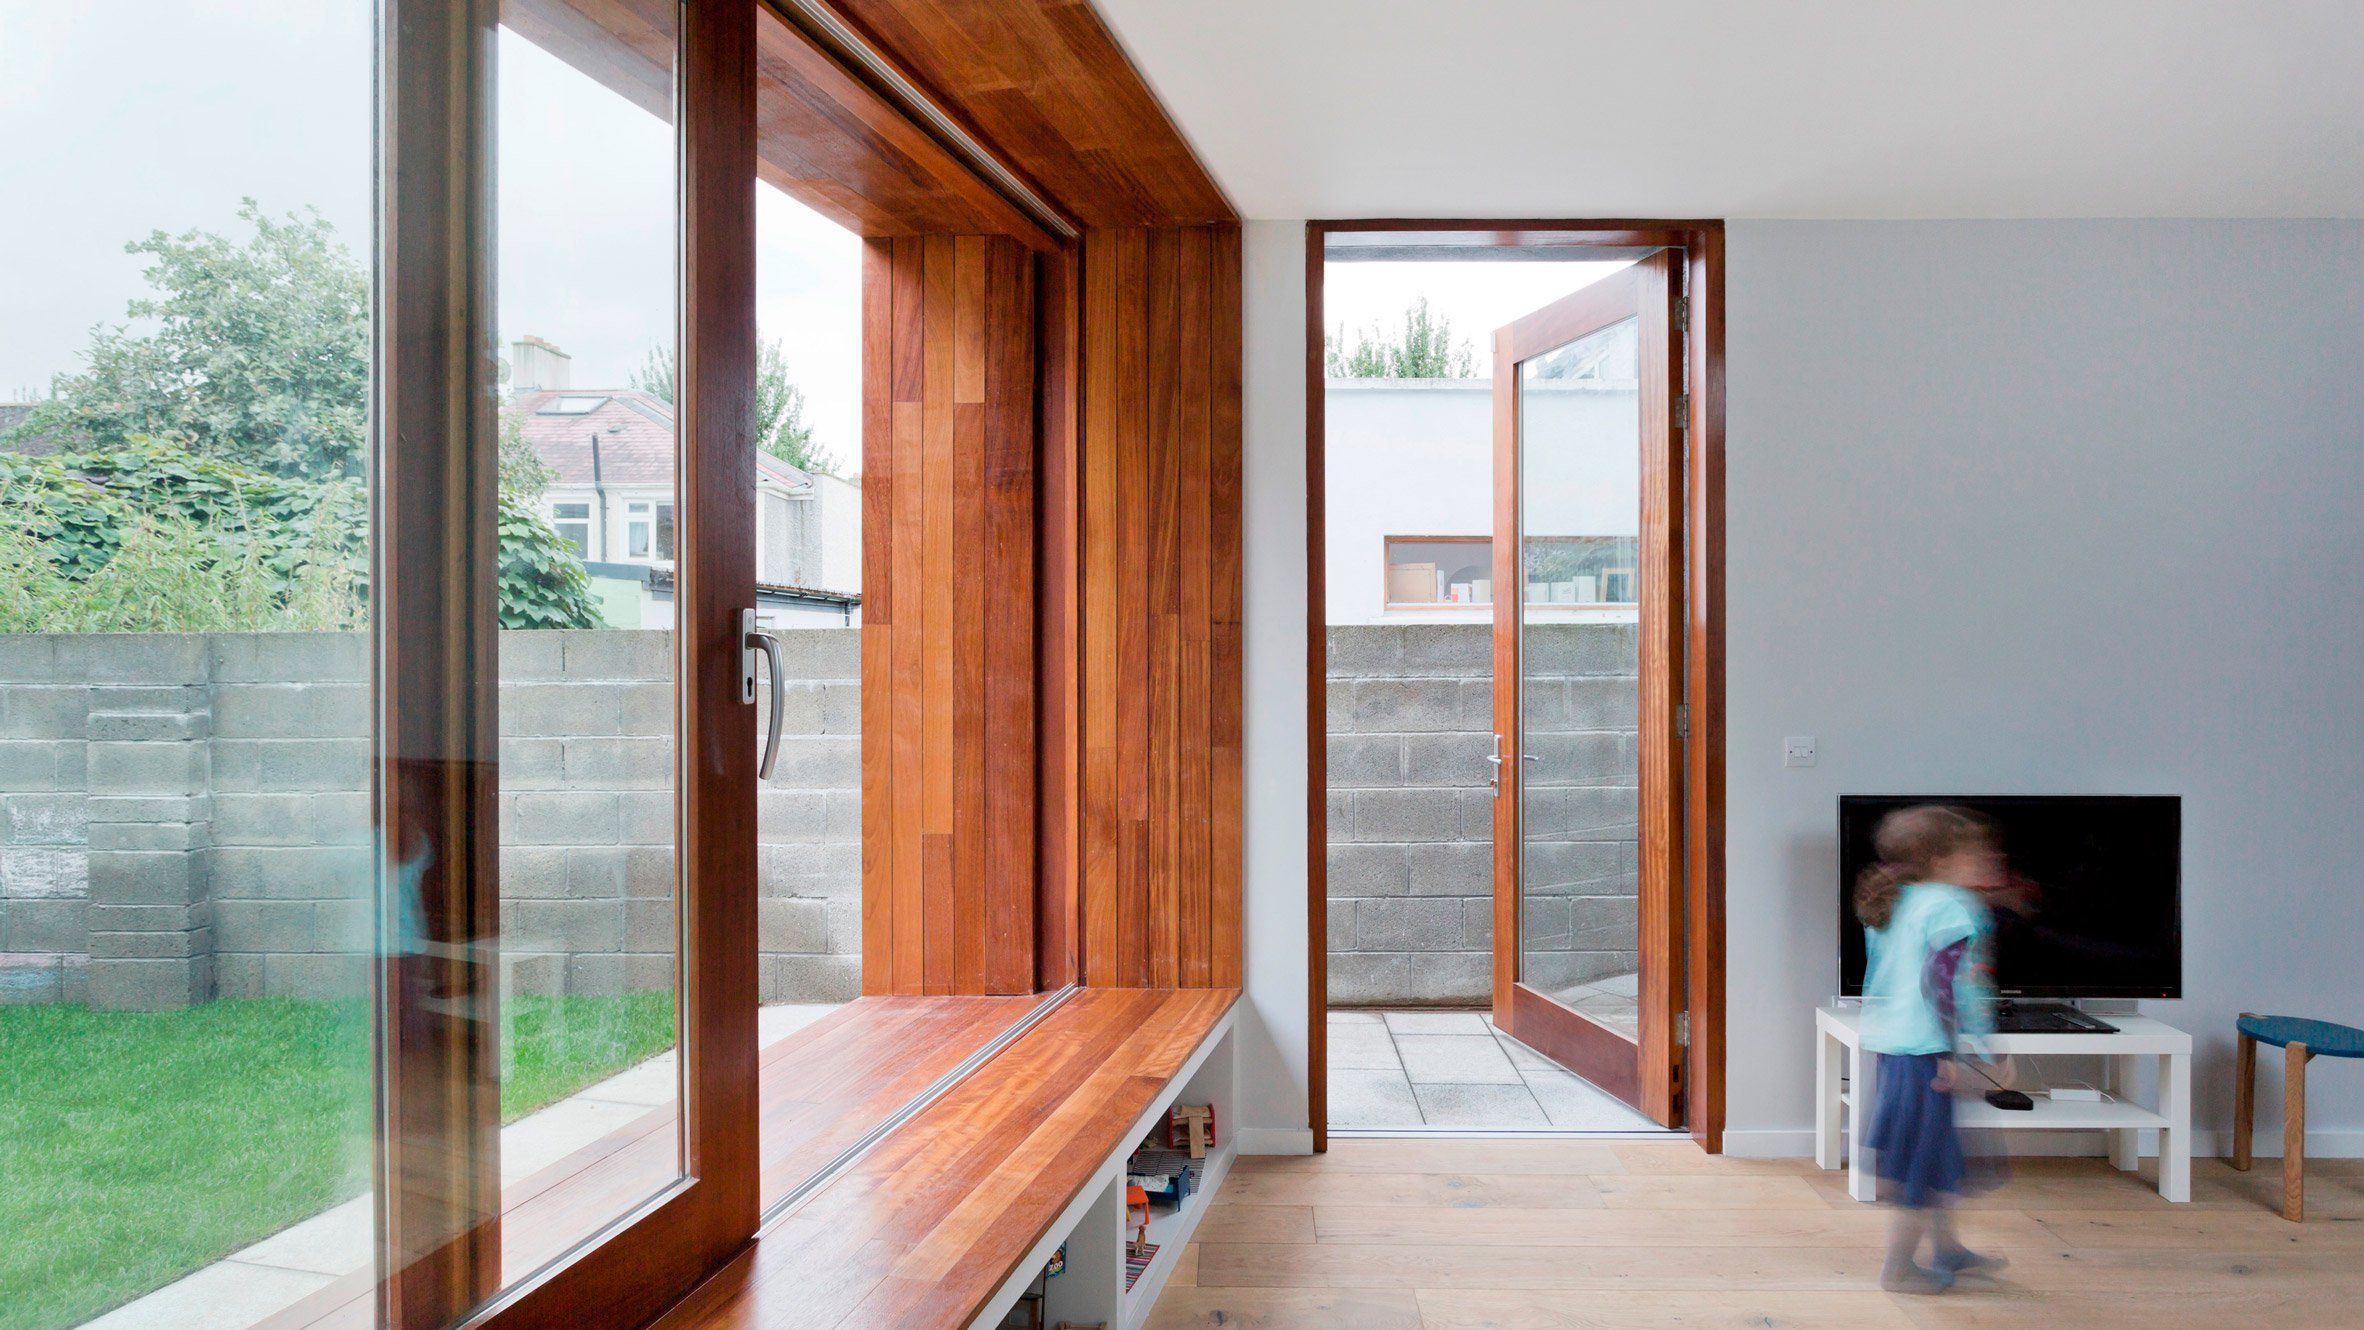 A Large Sliding Window Set Into The End Wall Of This Extension Is Enclosed Within Wooden Frame That Provides E For Internal And External Seating